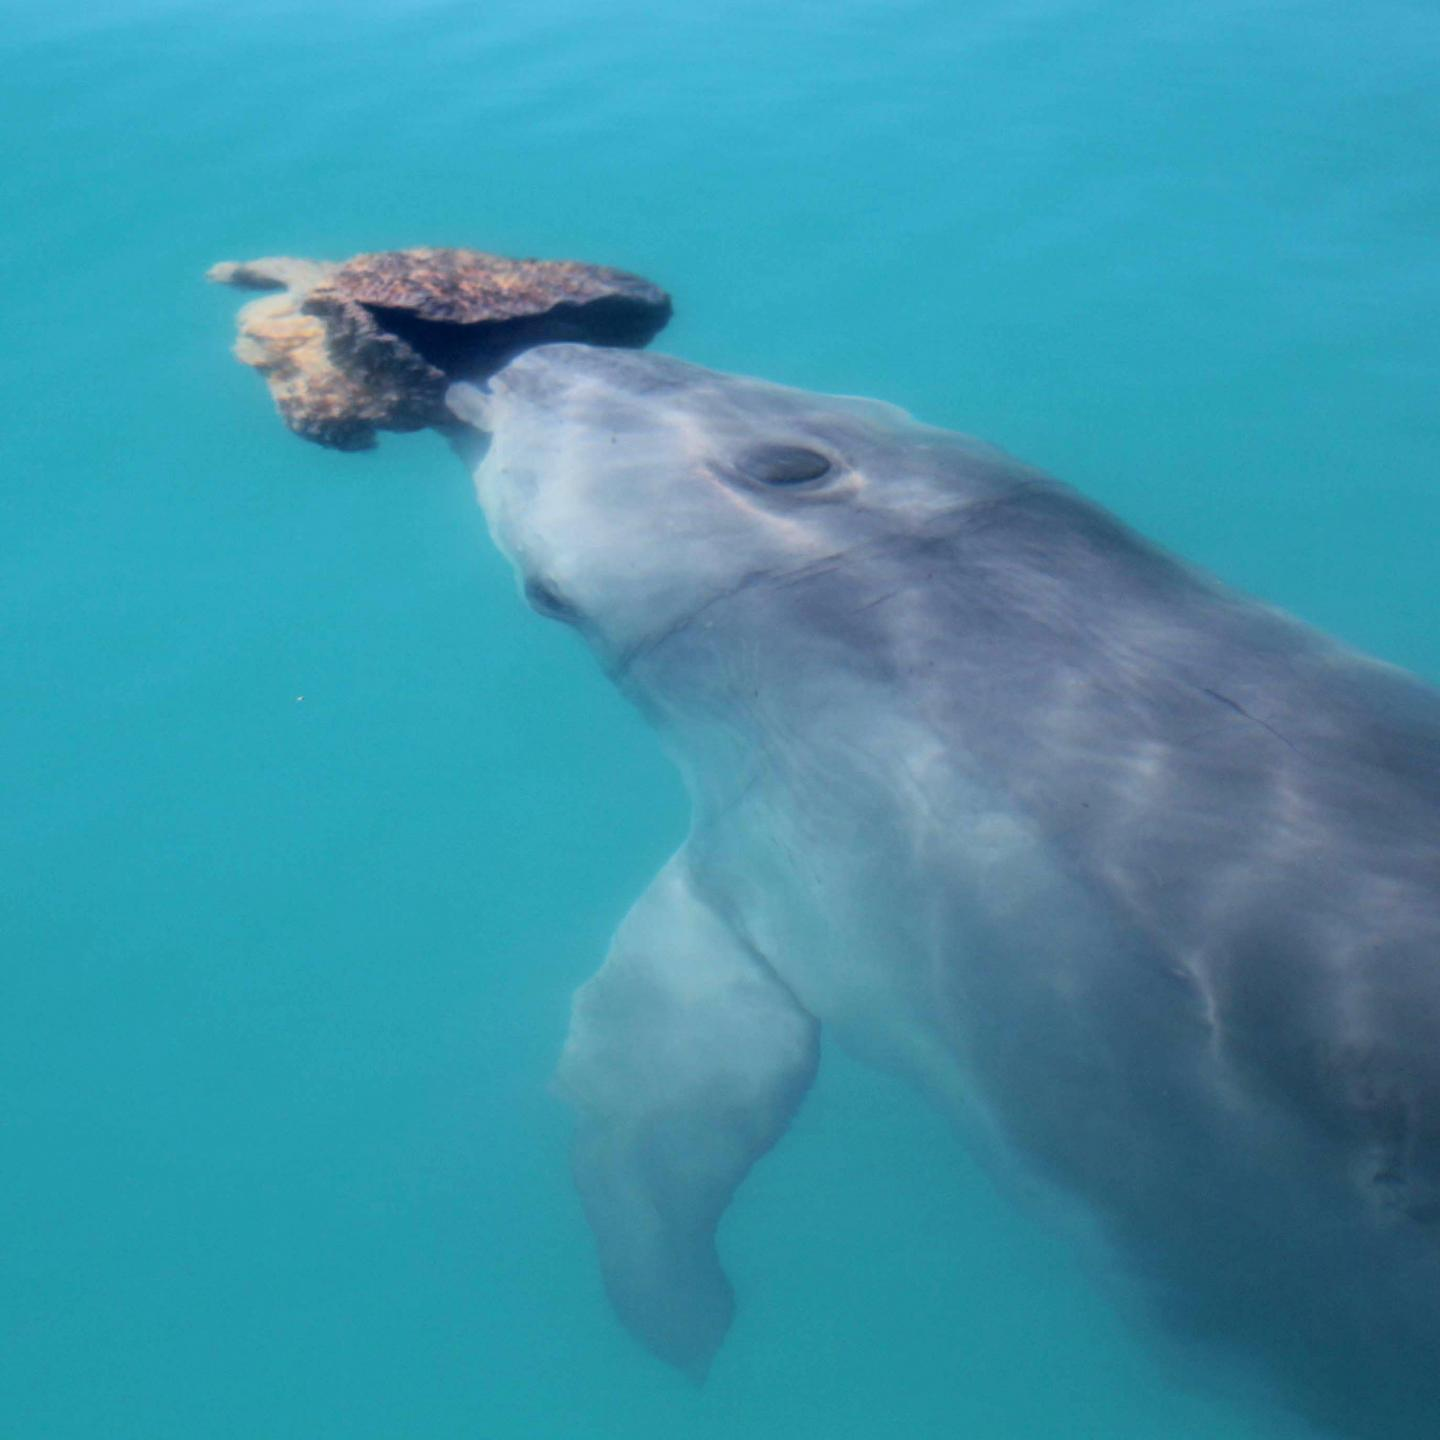 Dolphins form friendships through shared interests just like humans, scientists find